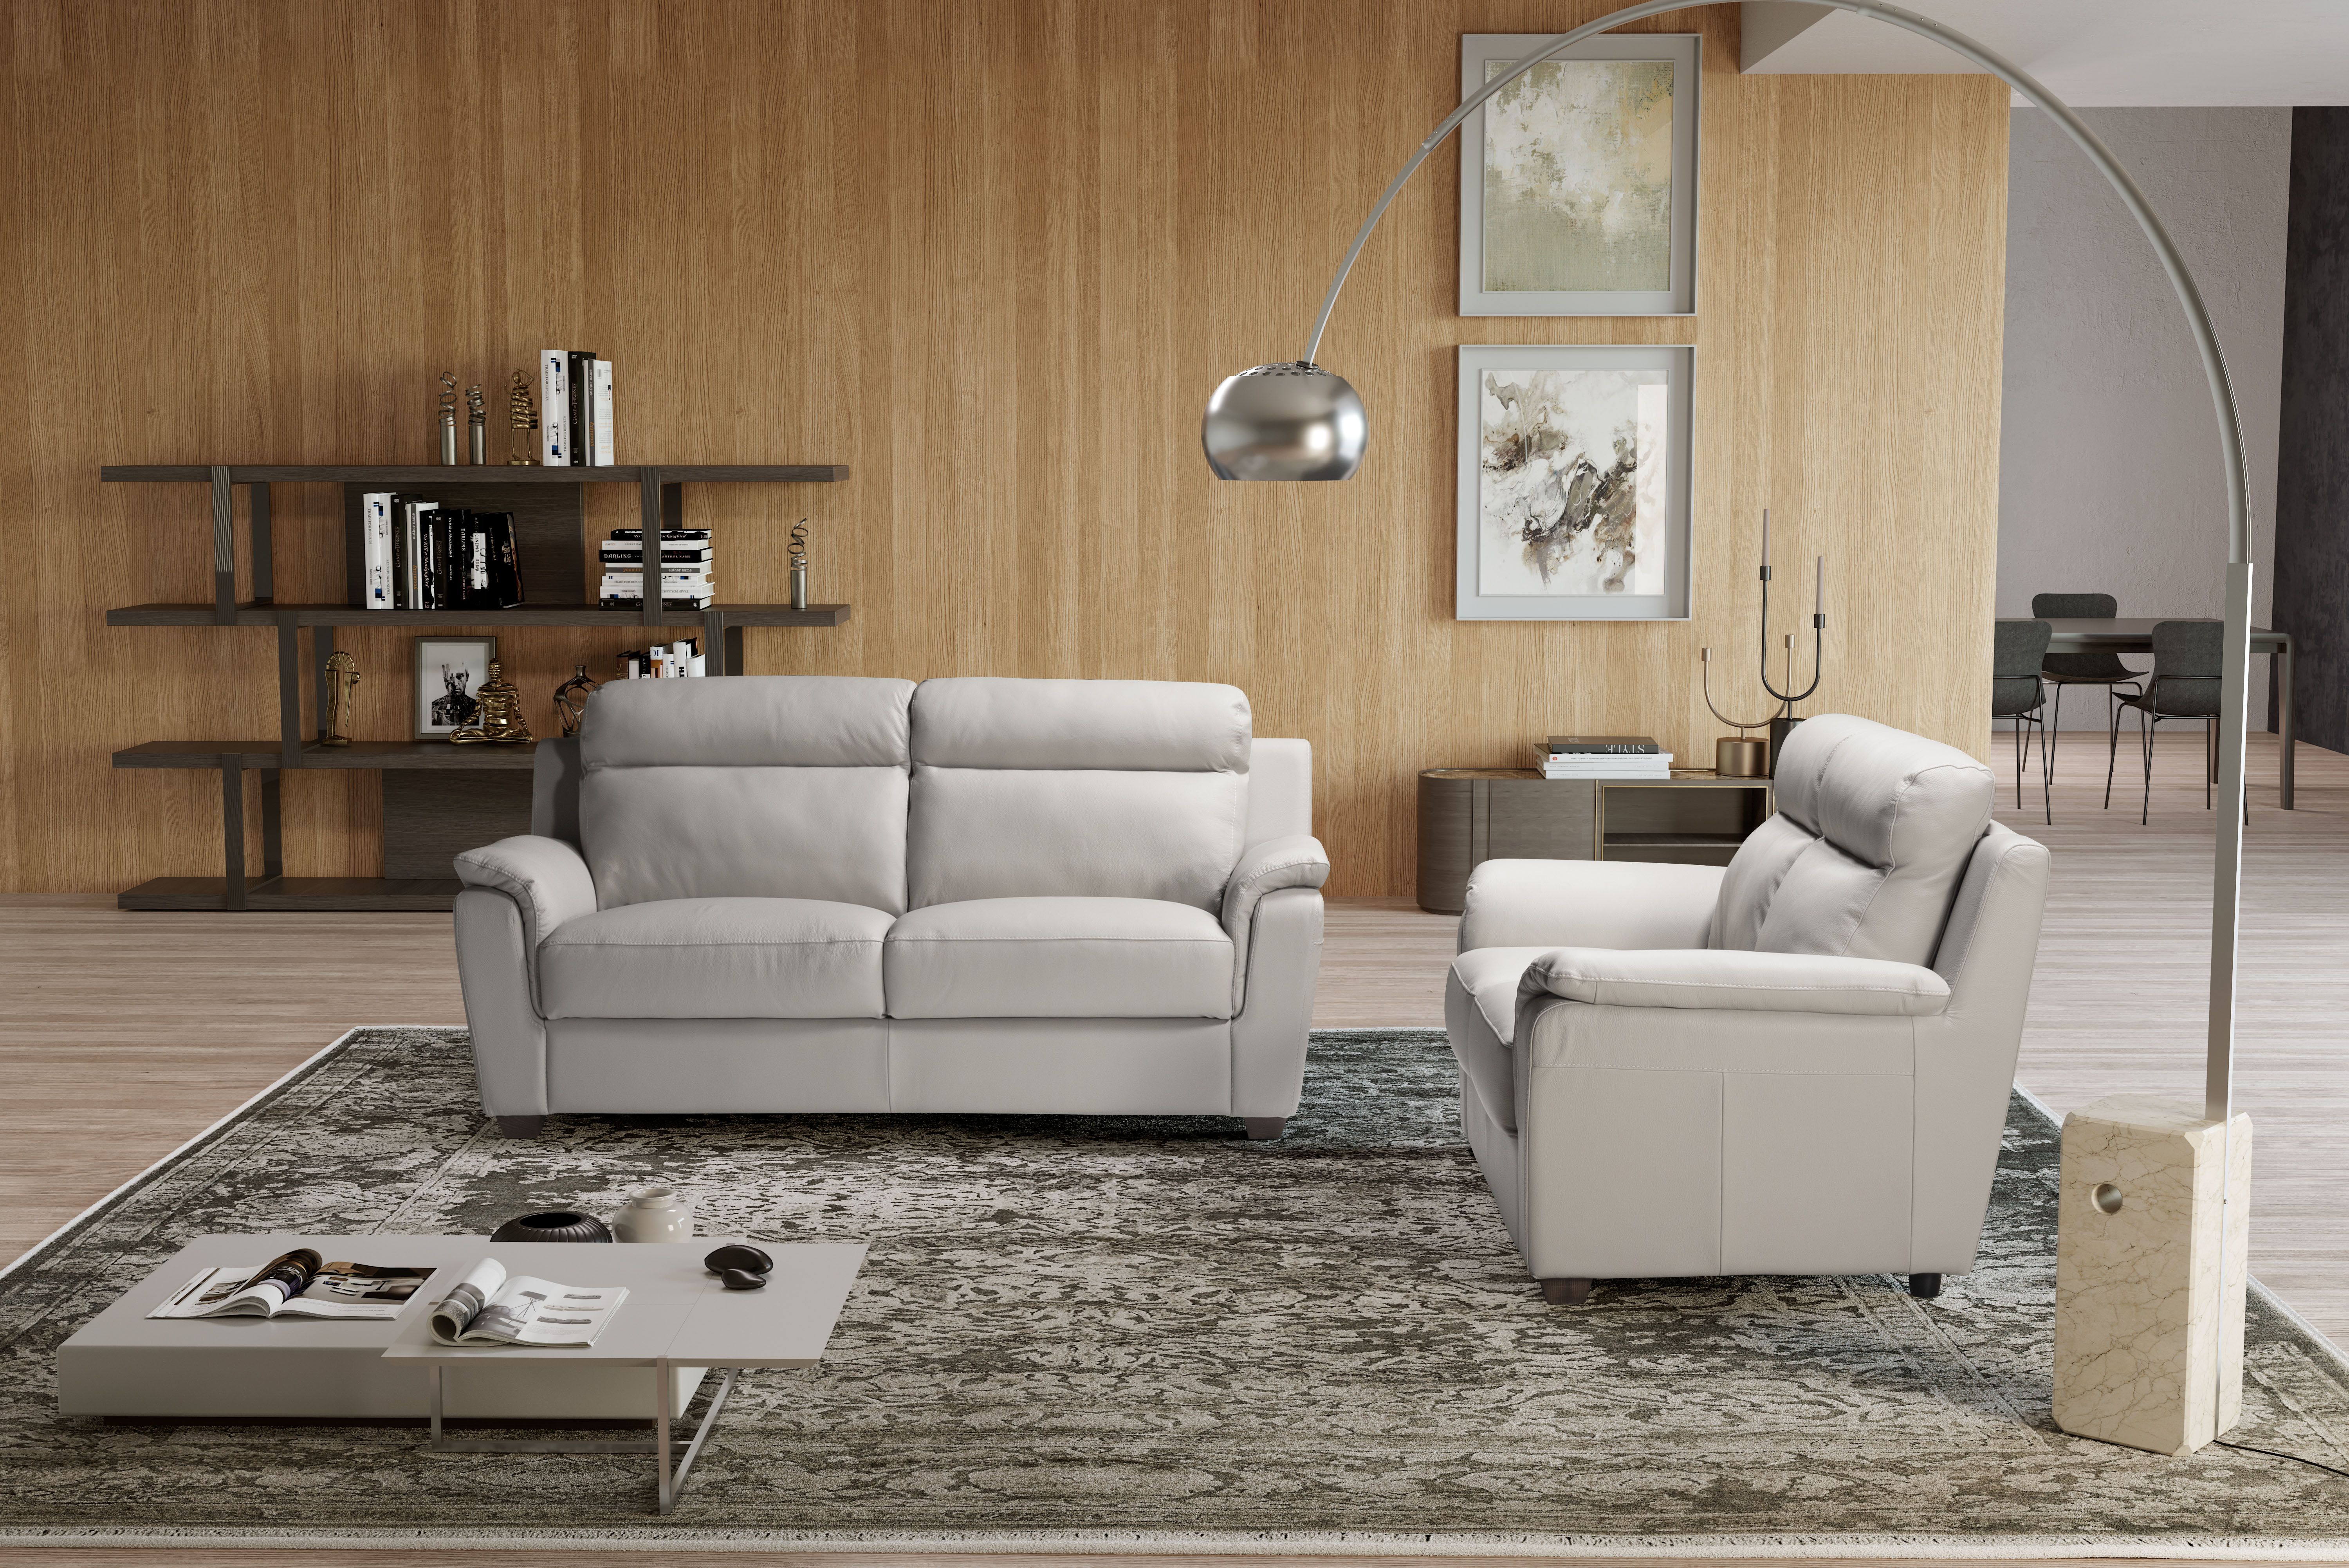 EDNA Italian Leather 3 & 2 Seat Sofas - Light Grey Cenere. RRP £3399 - Image 3 of 4